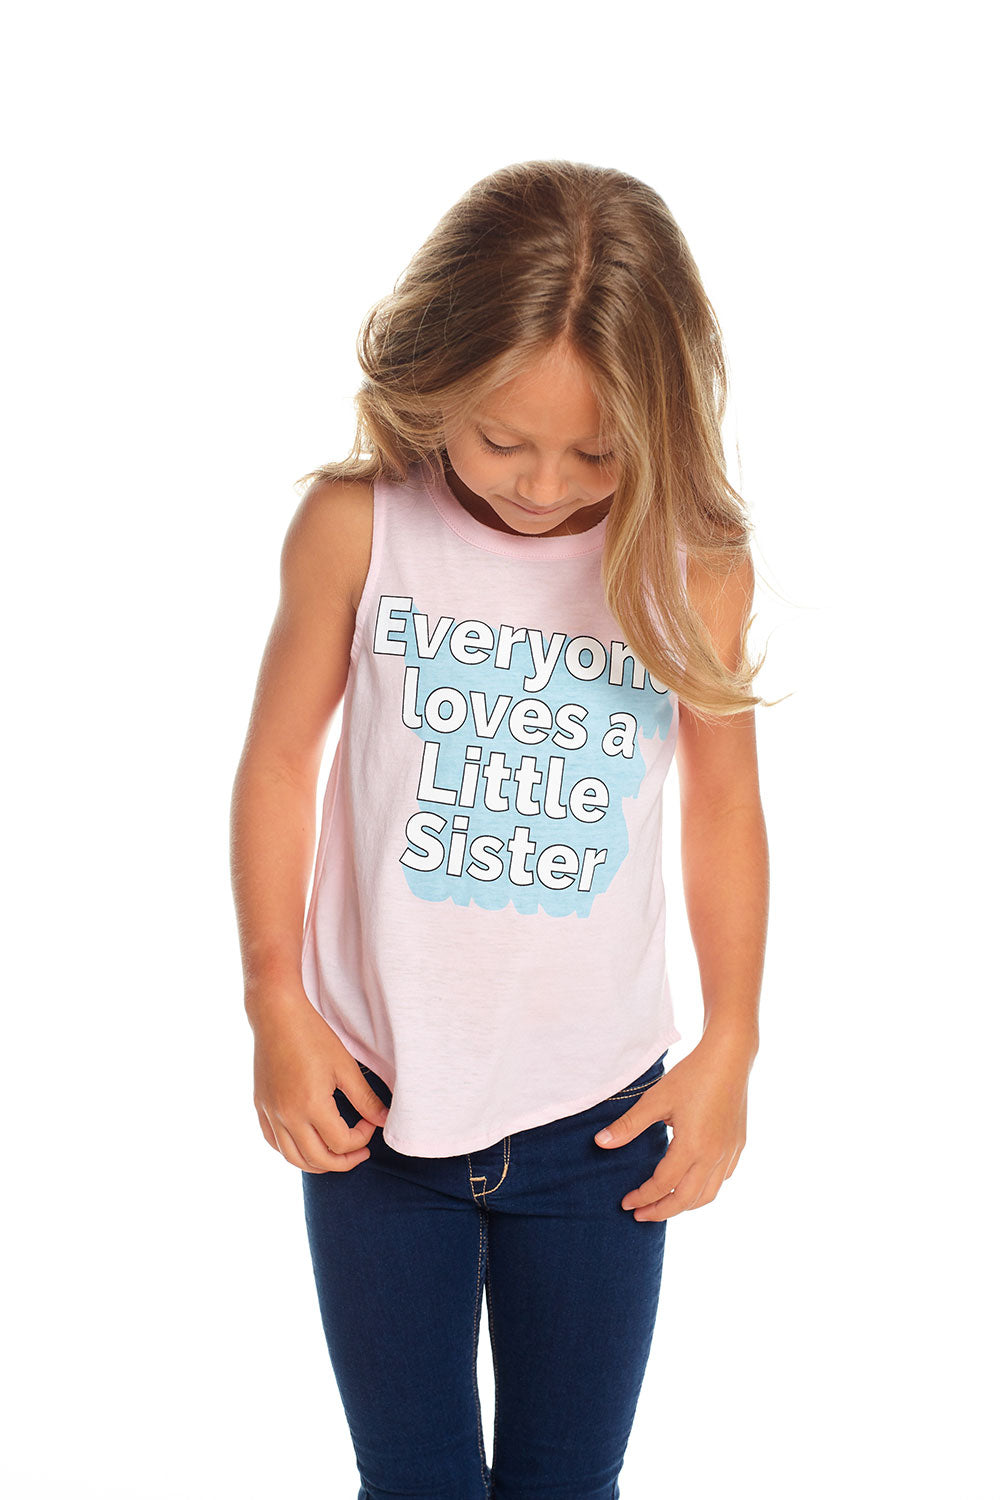 Love A Little Sister GIRLS chaserbrand4.myshopify.com